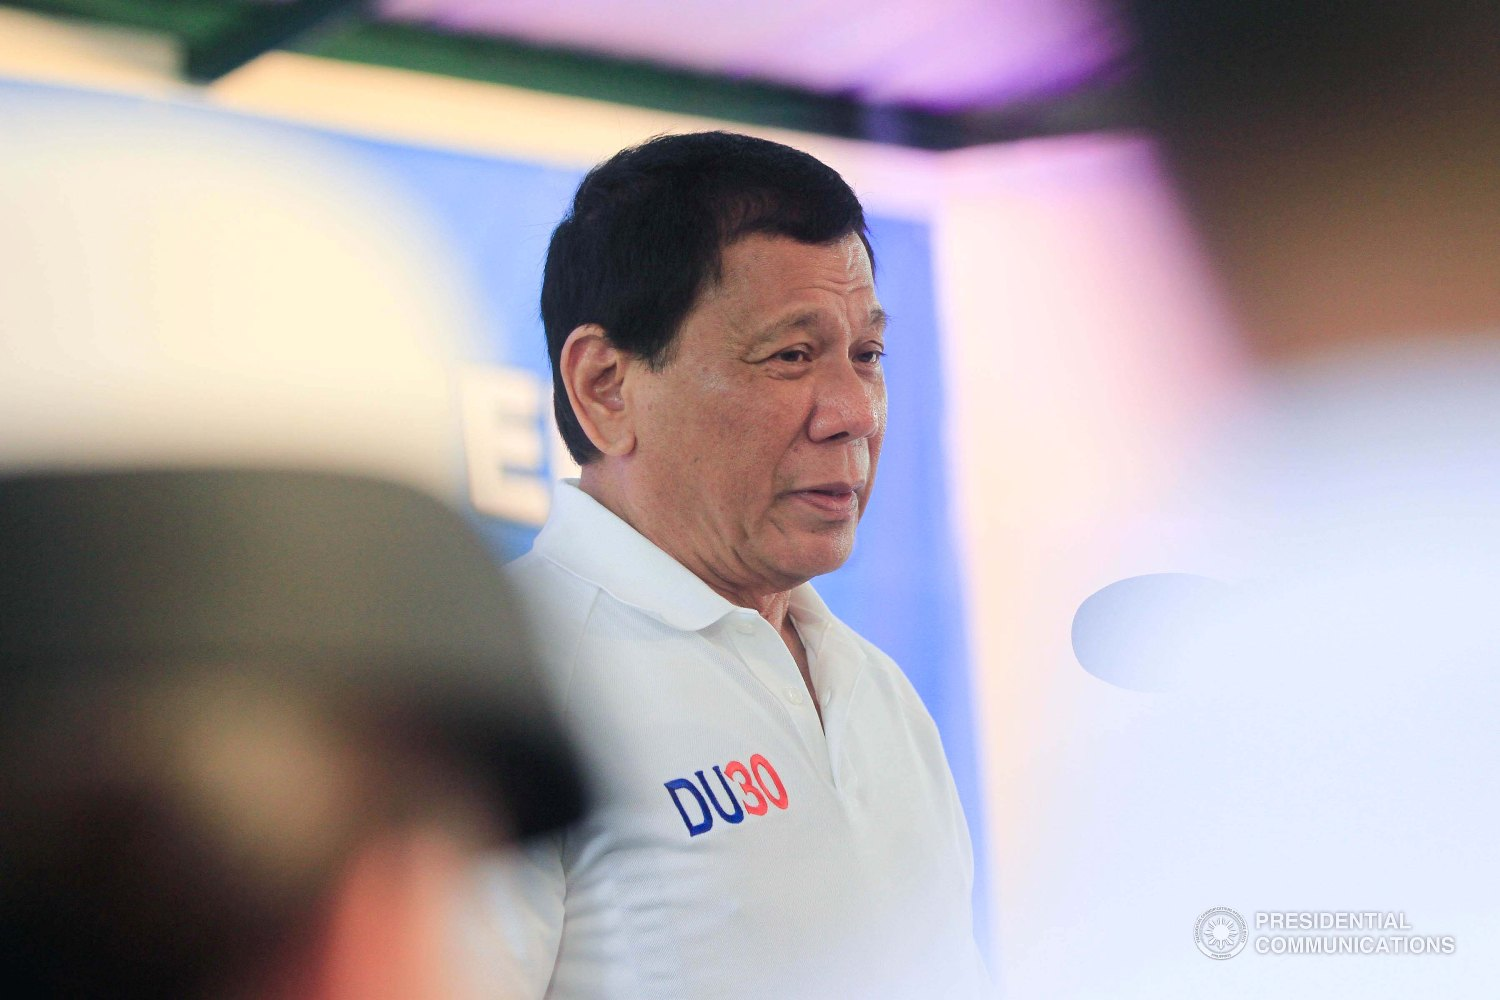 The 2017 Investment Priorities Plan (IPP) will be enforced on March 18 after President Rodrigo Duterte approved the IPP through Memorandum Order No. 12 last week. (Photo: Alfred Frias/ Presidential Photo)